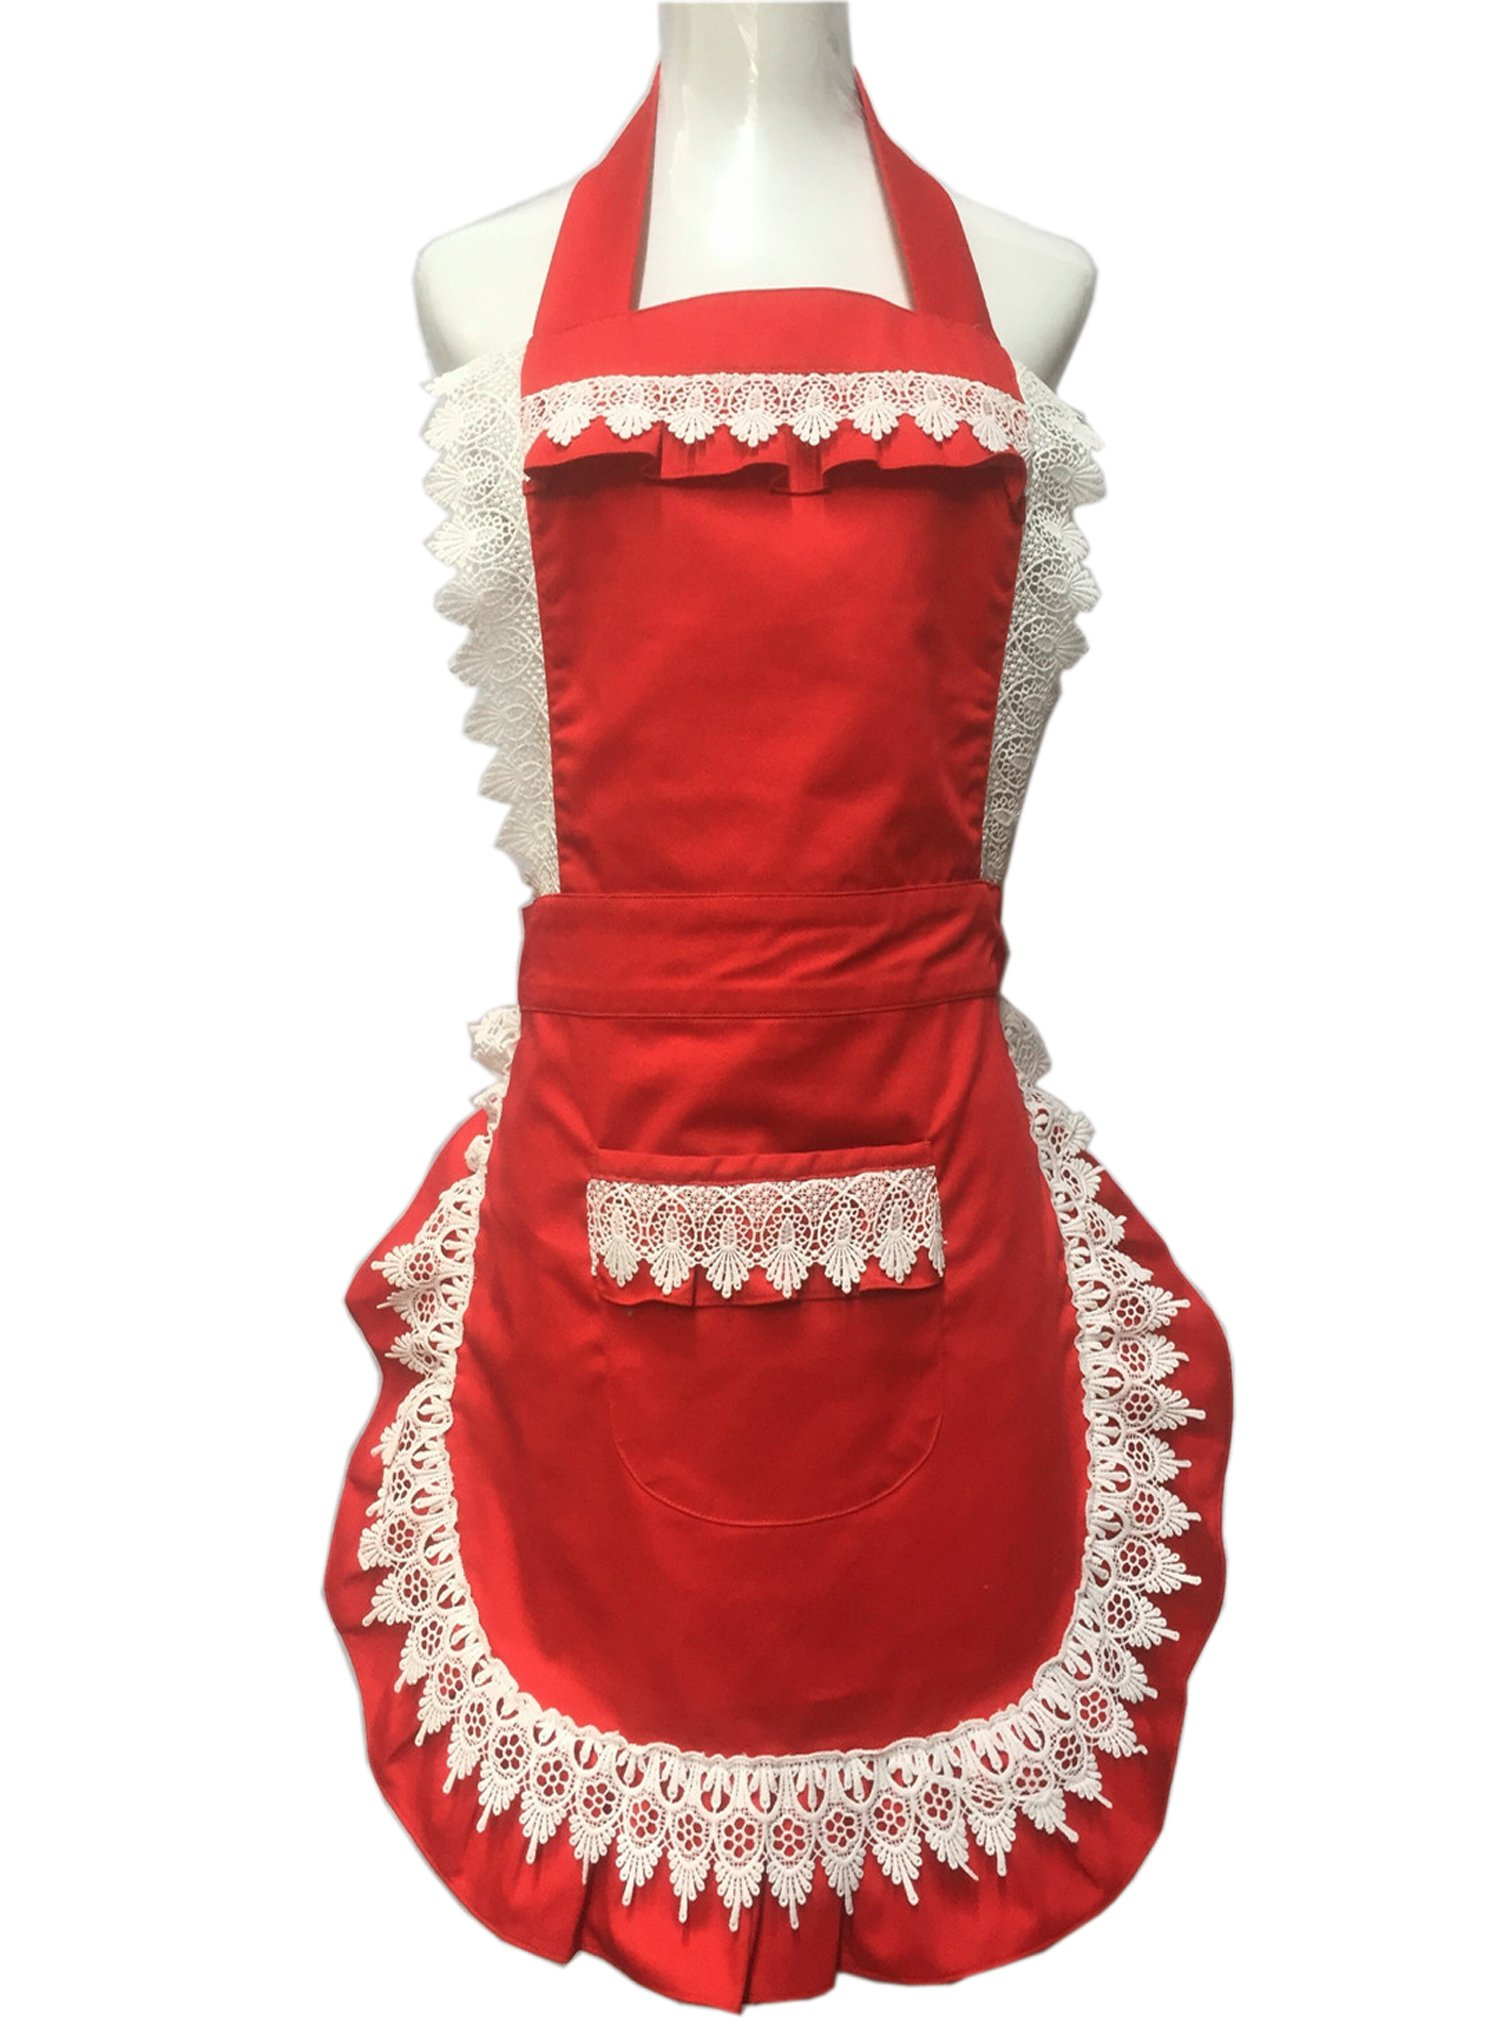 Lovely Lace Work Adjustable Apron Home Shop Kitchen Cooking Women Aprons With Pocket for Christmas Gift, Red by Hyzrz